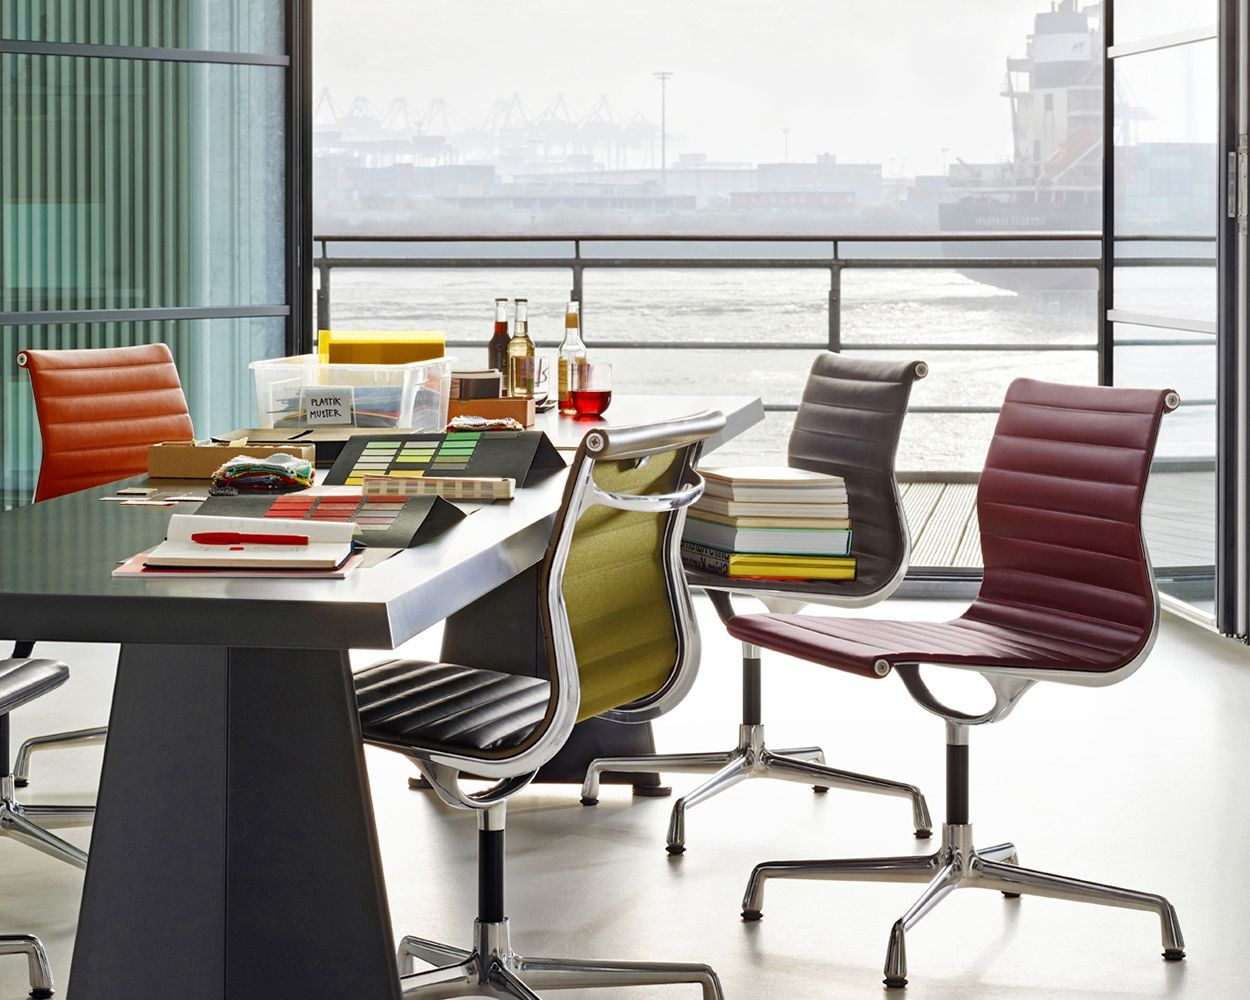 The Aluminium Chair By Vitra Is One Of The Great Furniture Designs Of The Twentieth Century Charles And Ray Eames Conceived And Deve